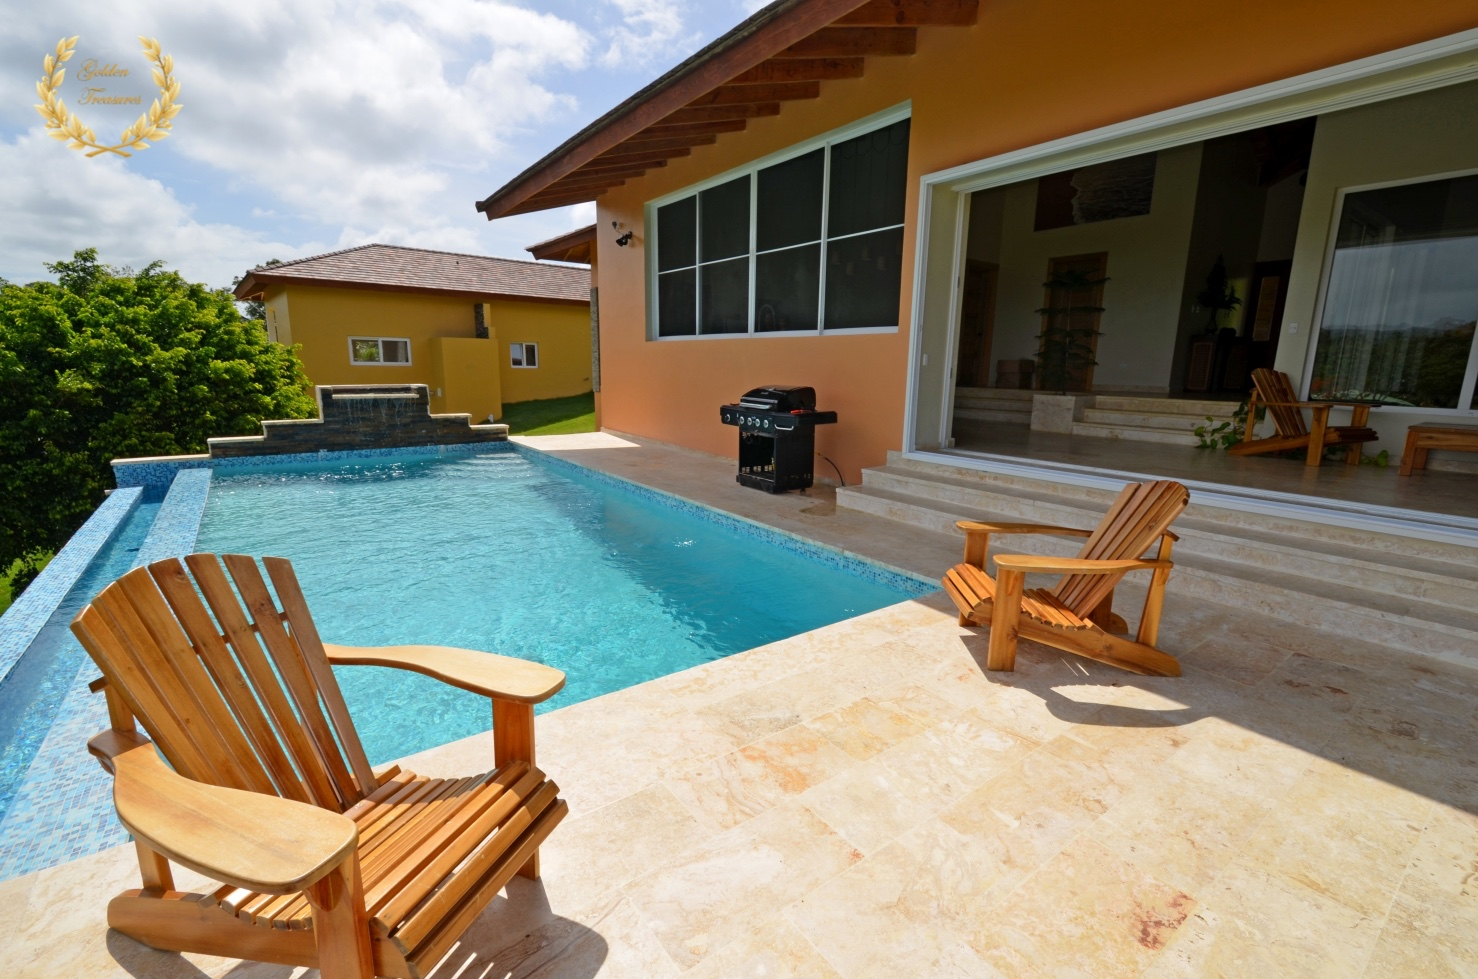 Splendid 3 Bedroom Villa Rental in Sosua